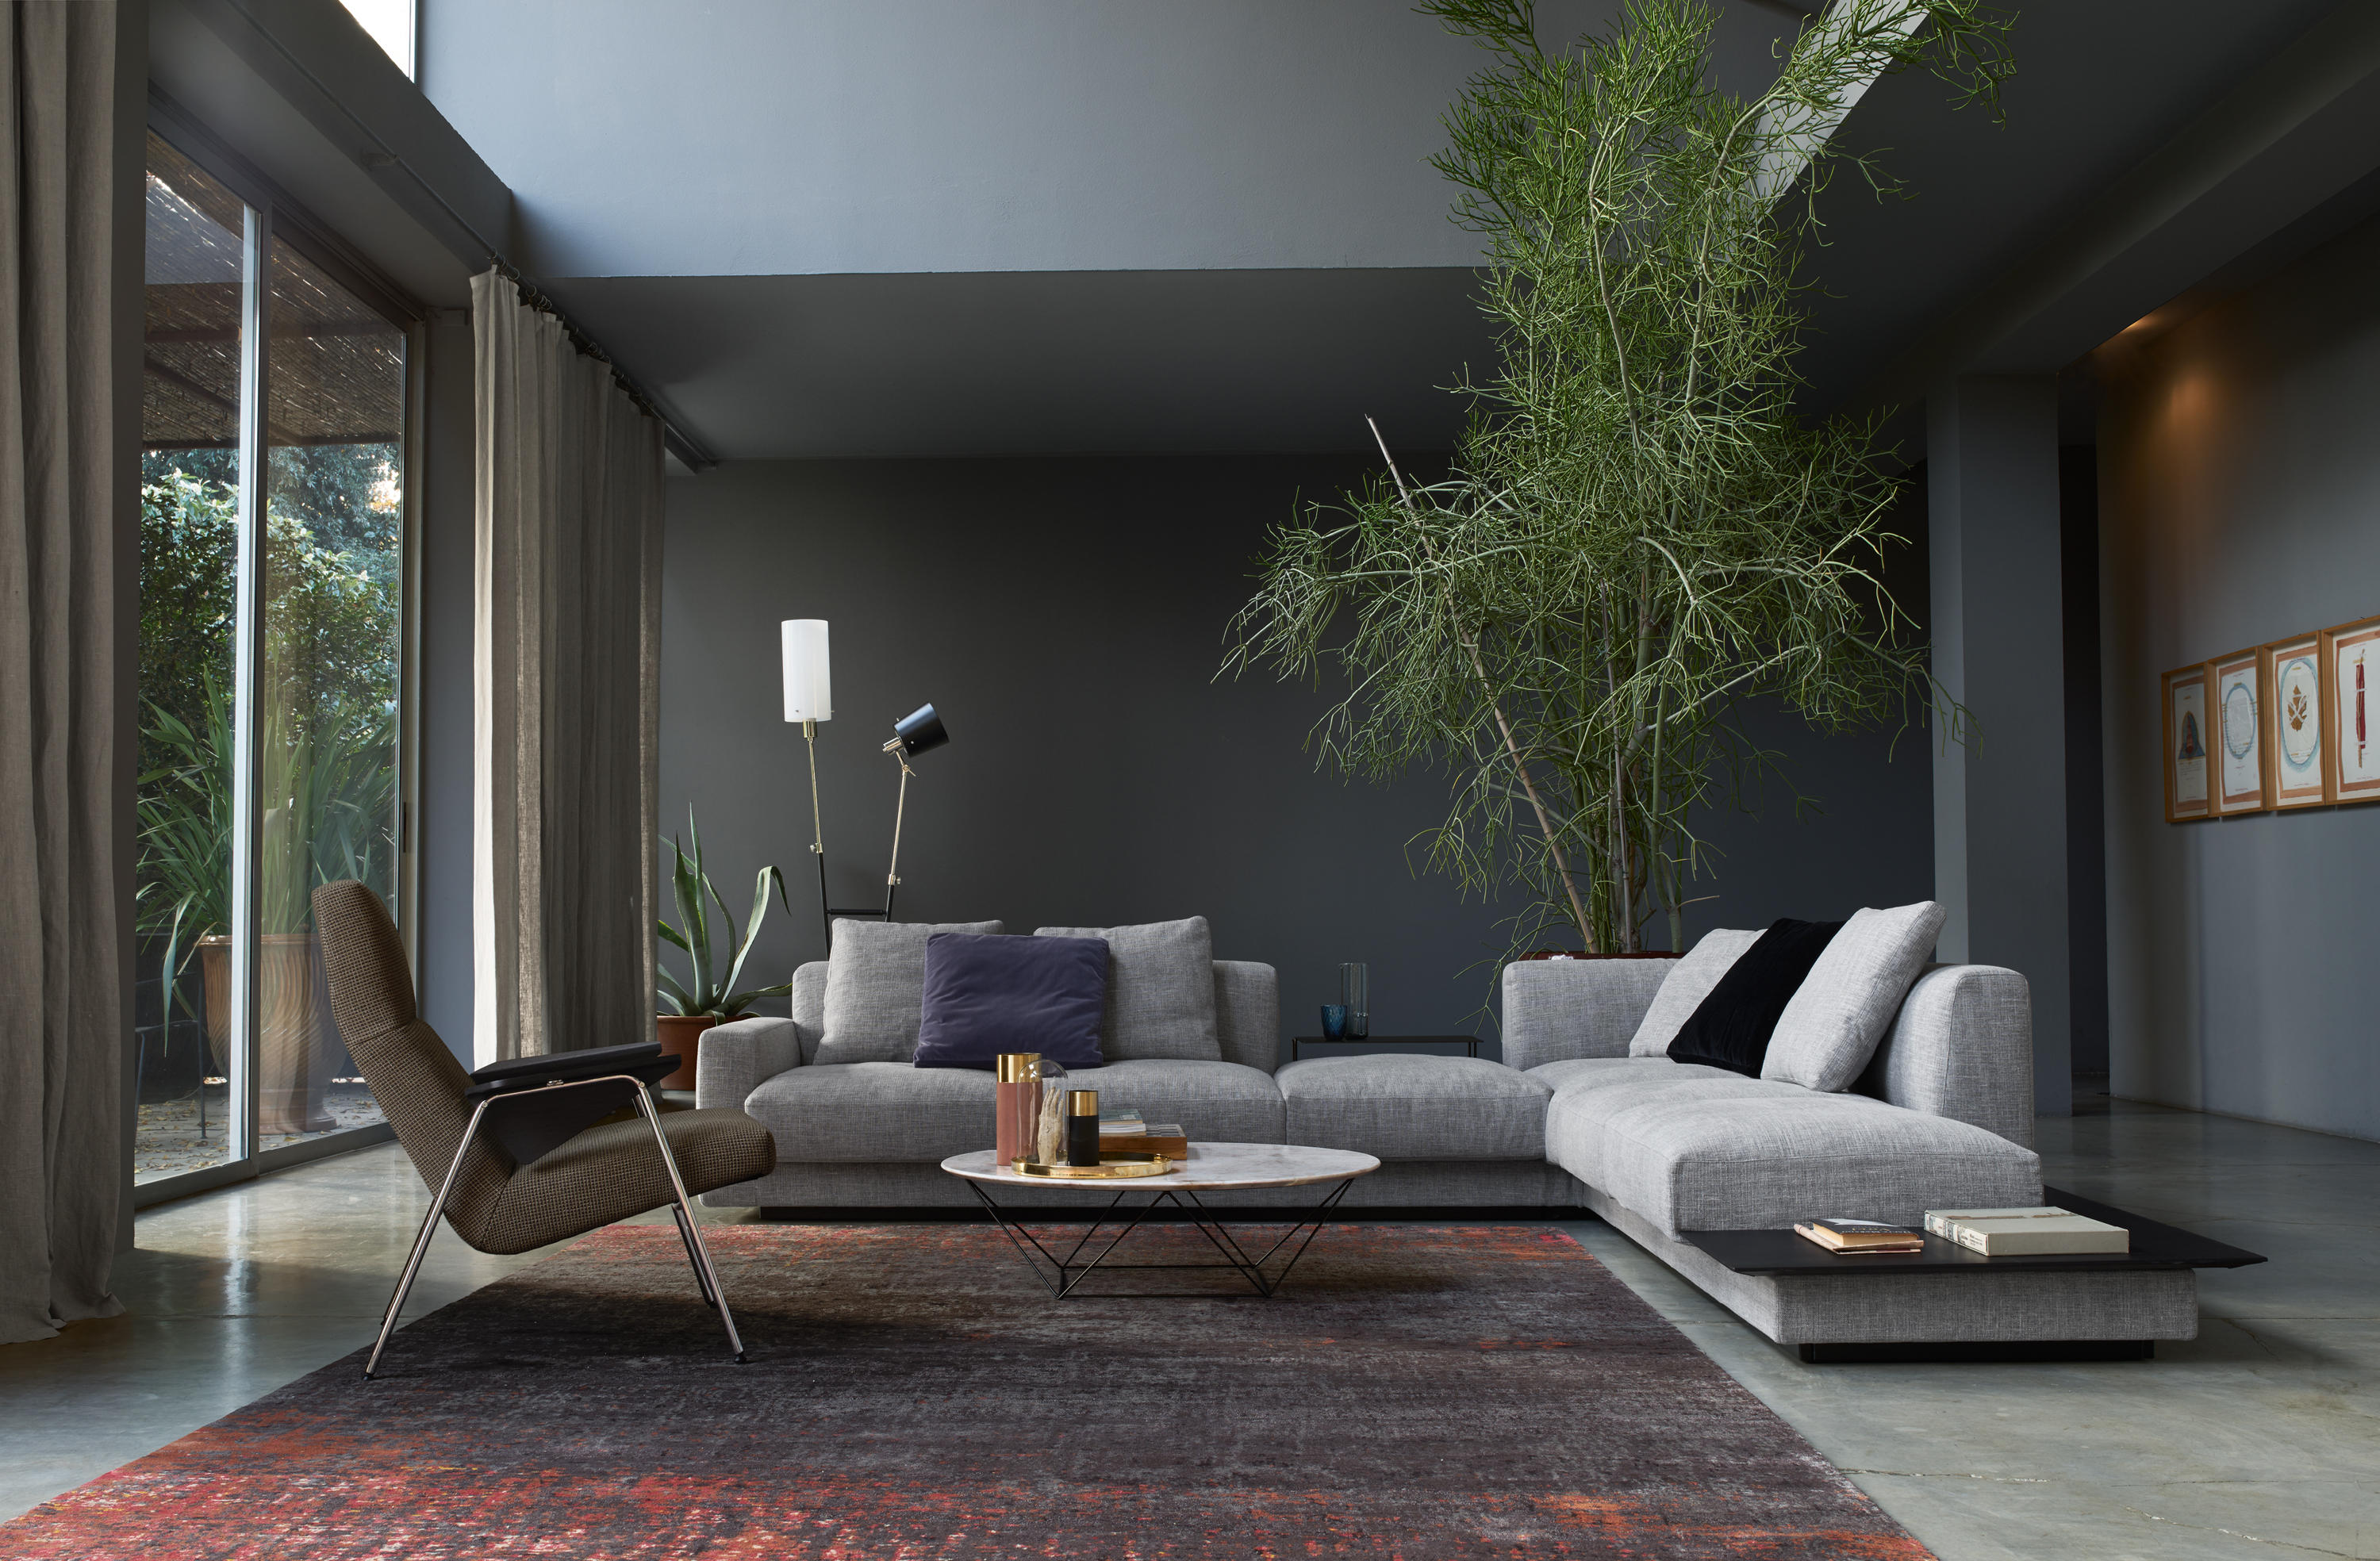 Walter Knoll Design Fauteuil.Votteler Chair Armchairs From Walter Knoll Architonic